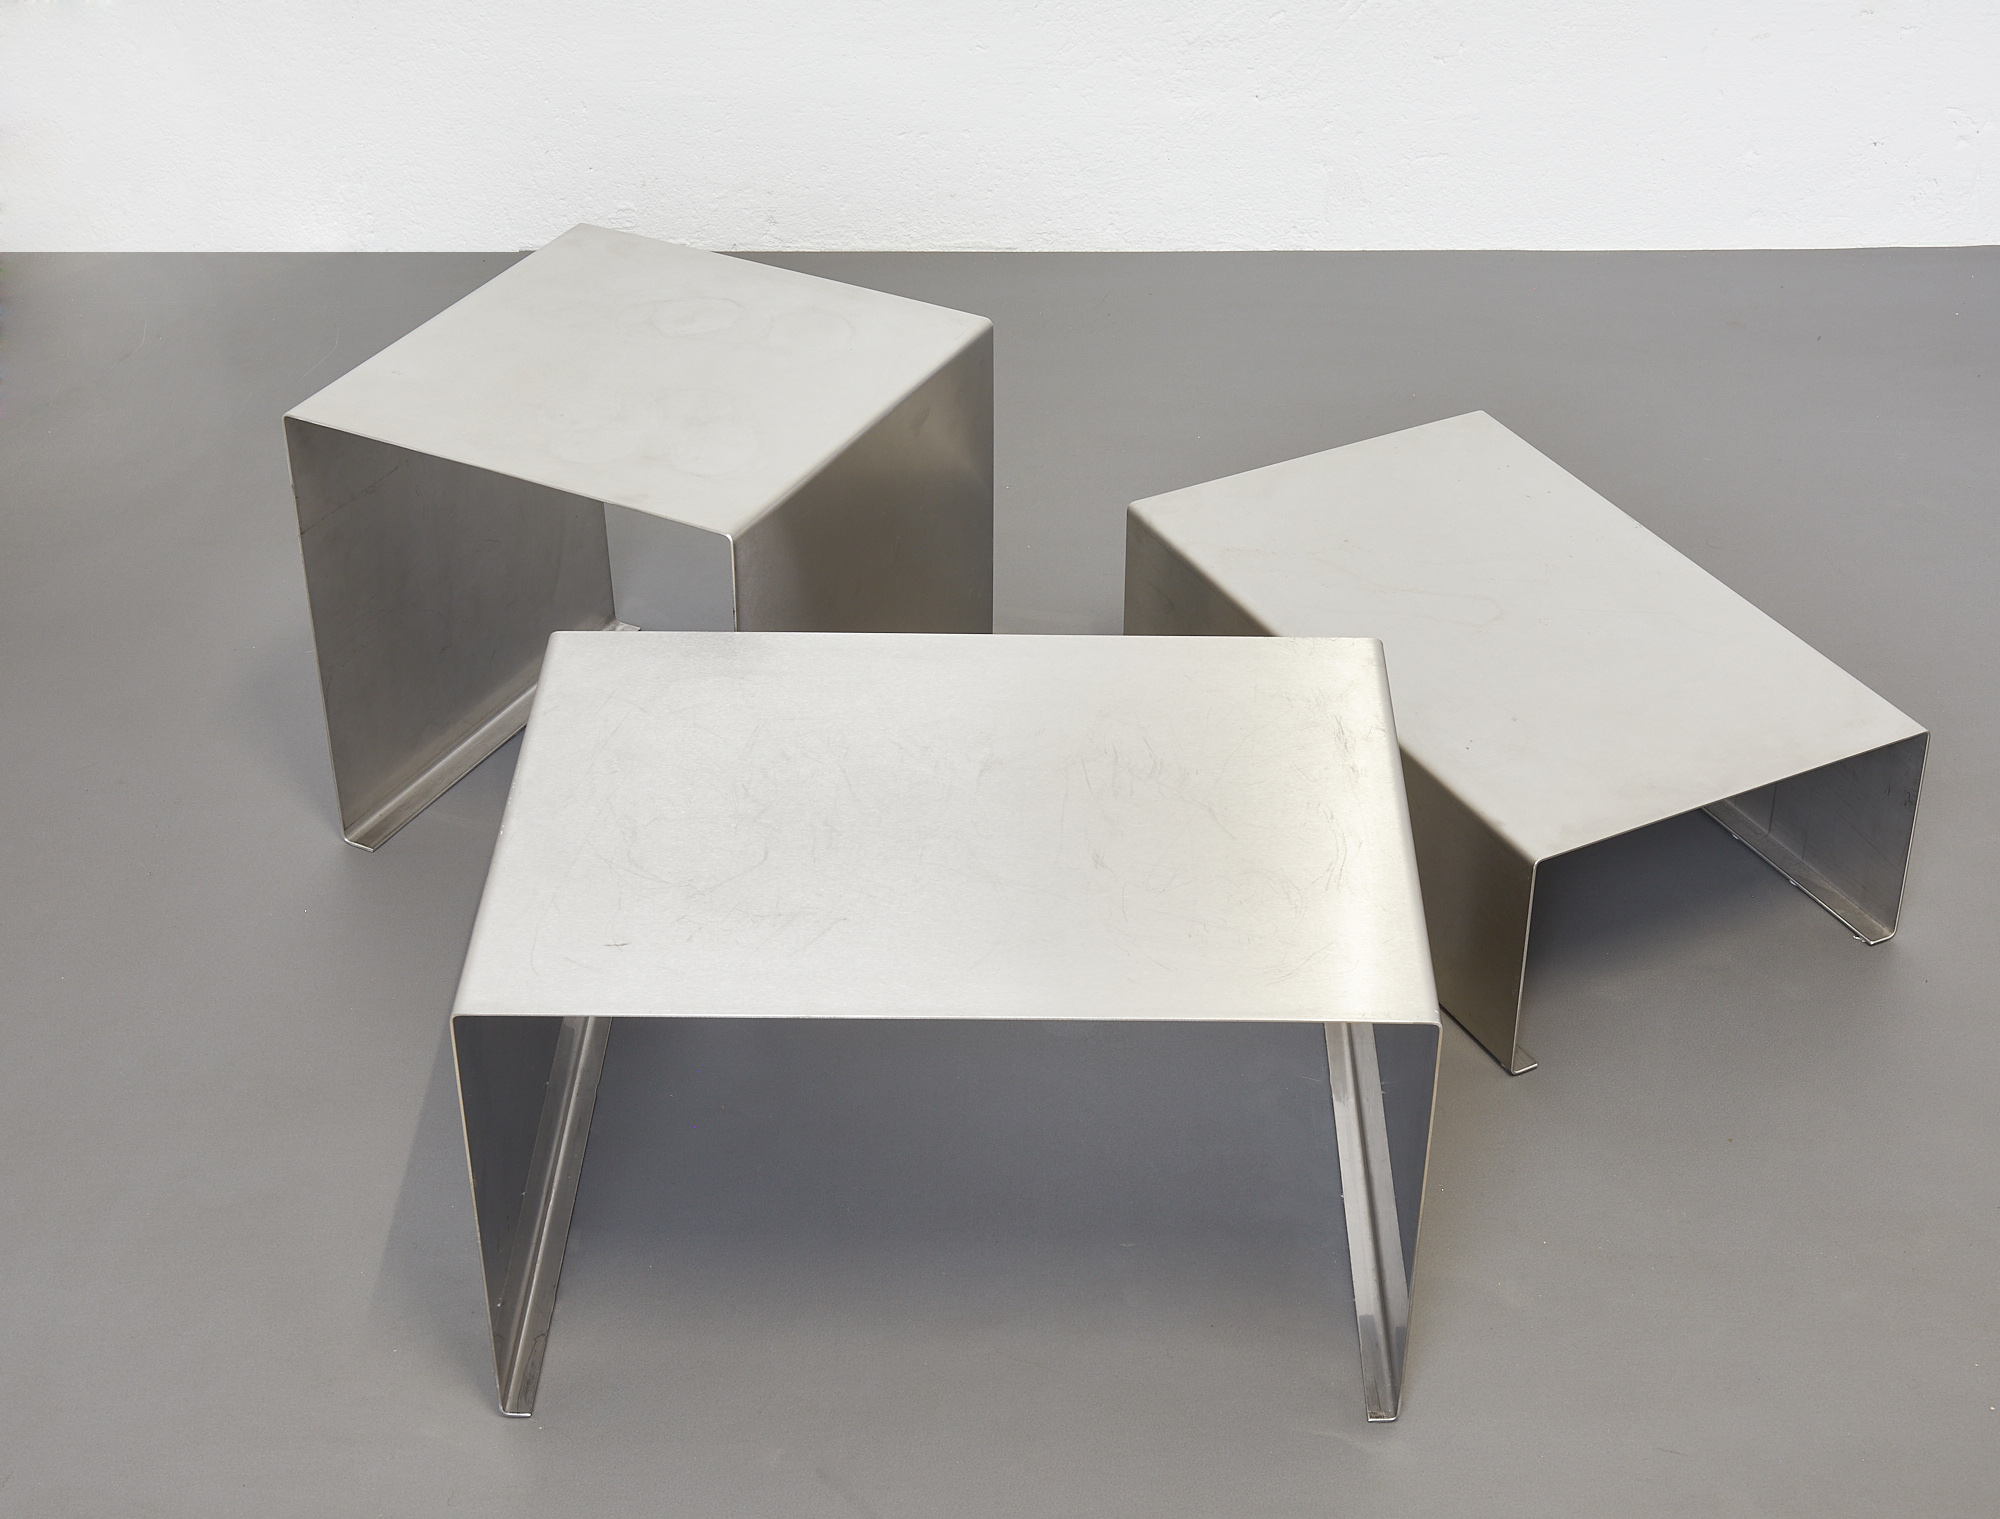 set-of-low-tables-in-brushed-metal-1970-1980-image-10